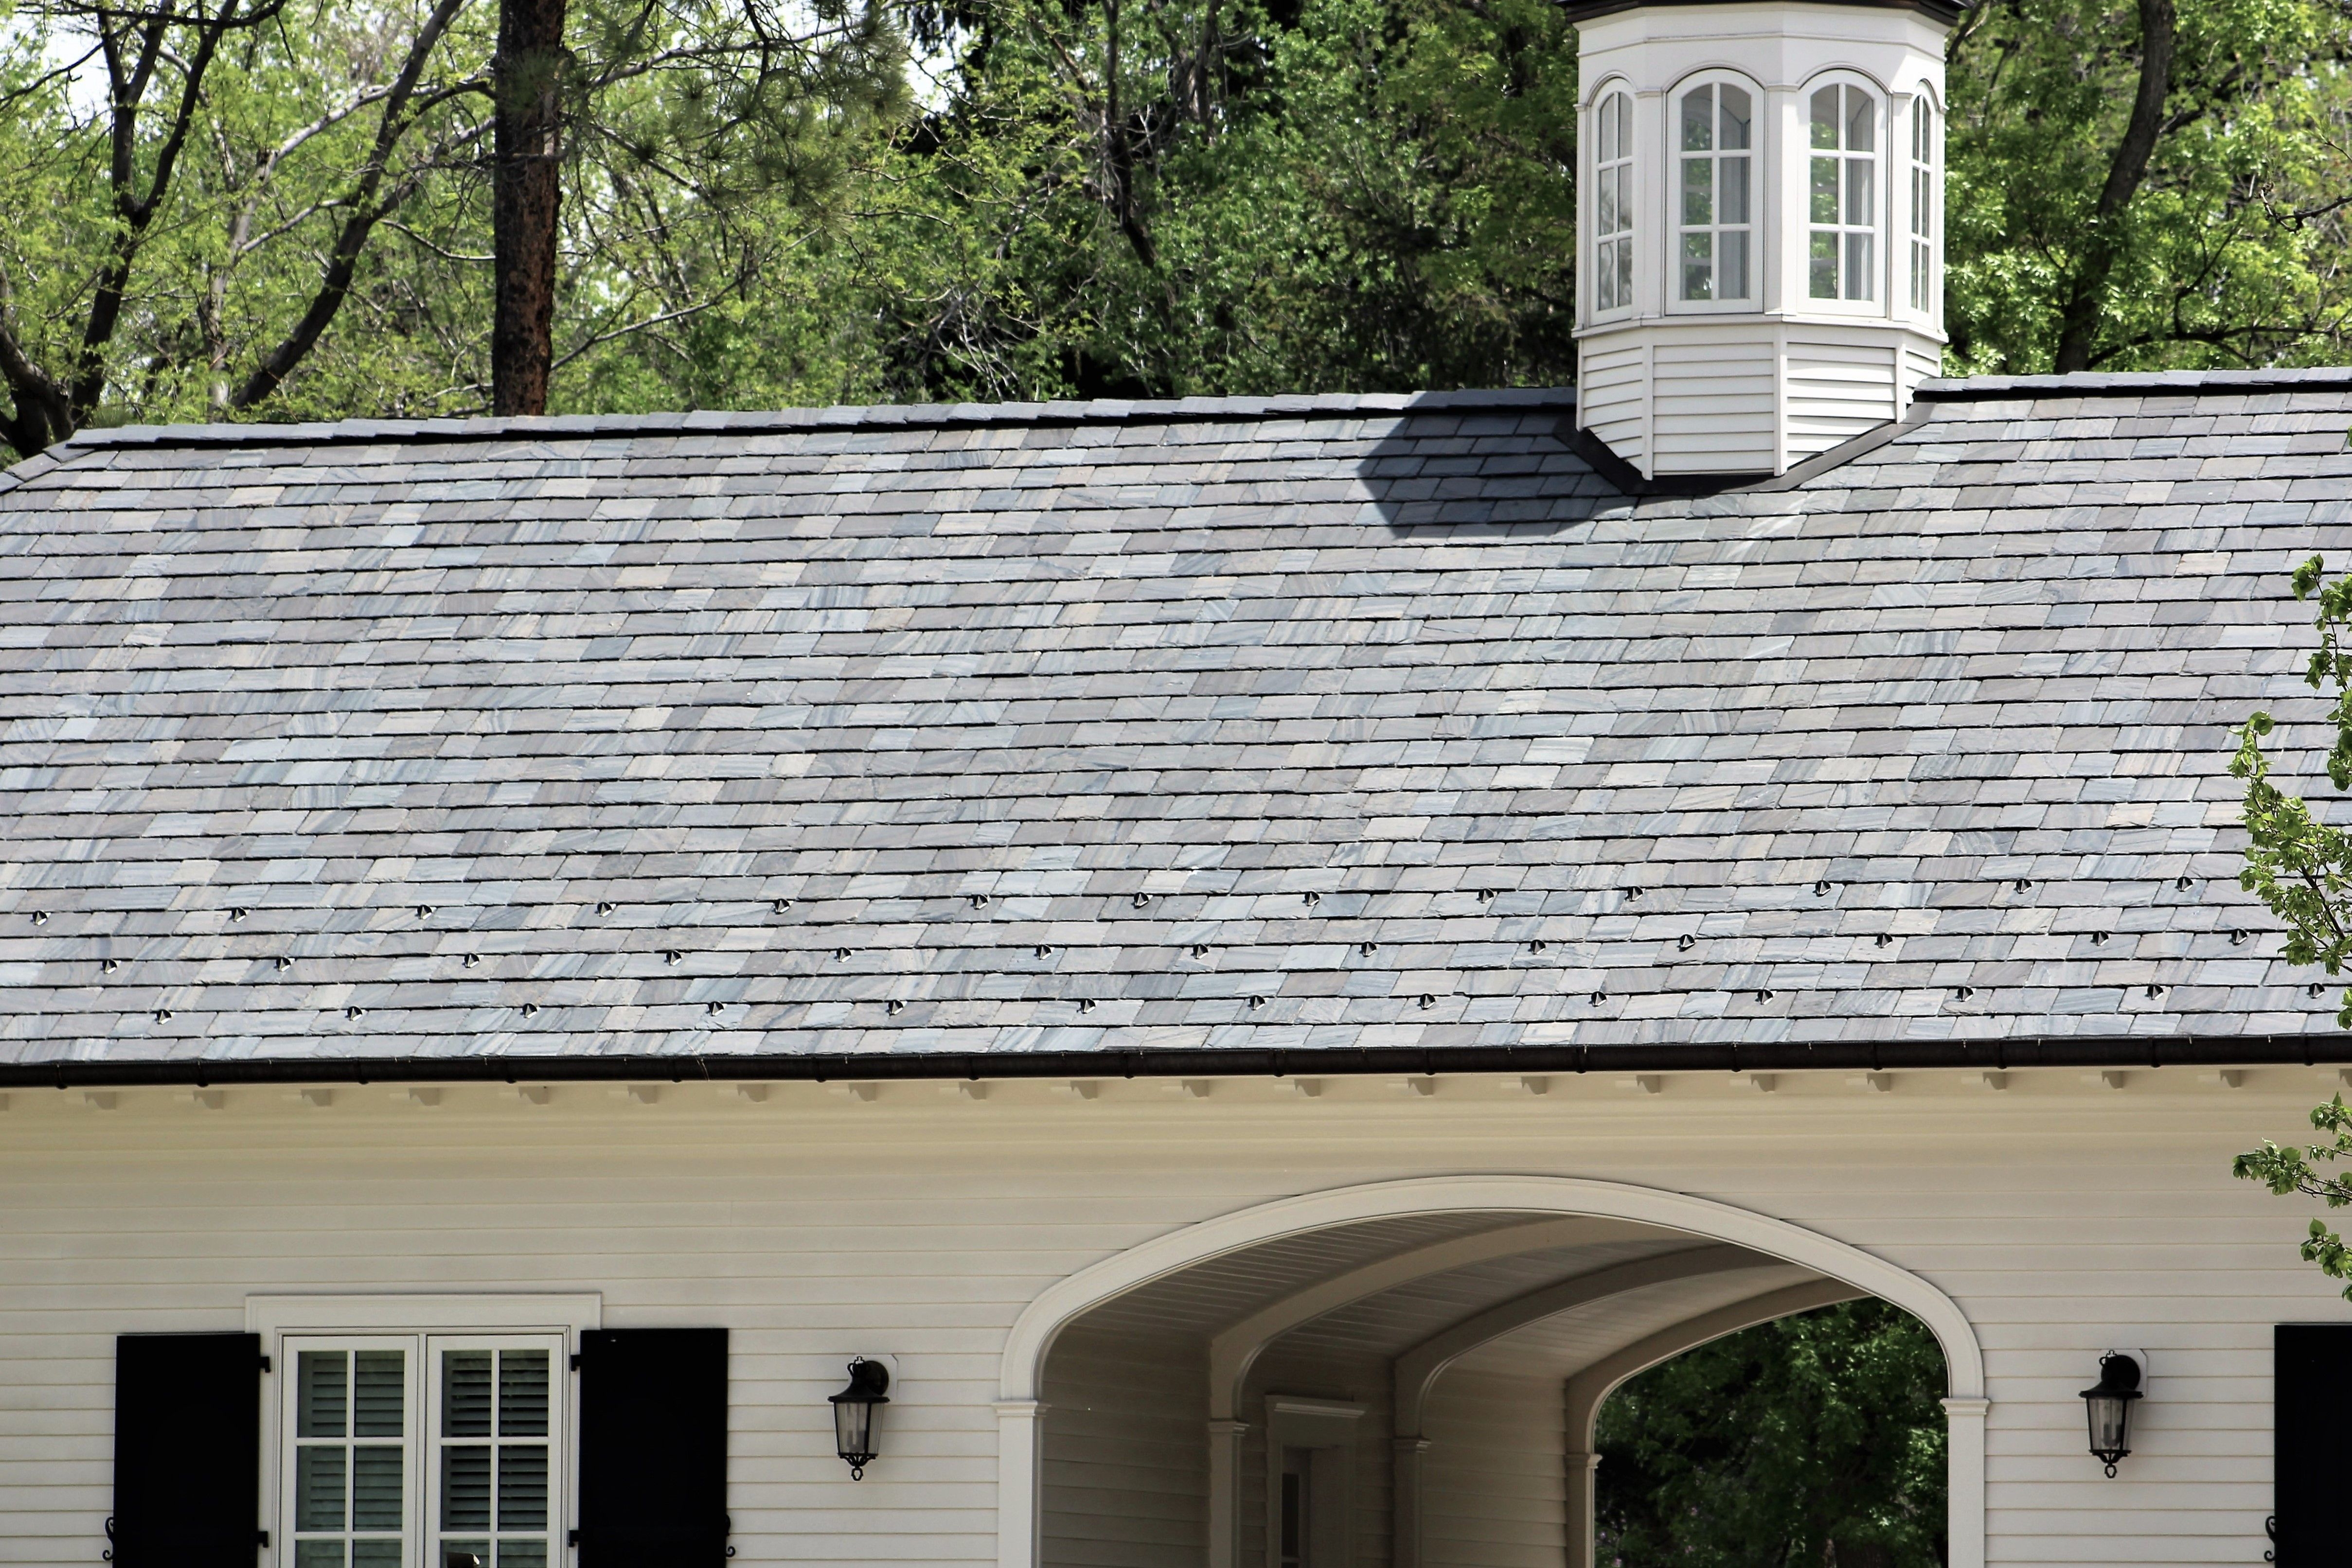 Slatetec Slate Roof Slate Roof Roofing Systems Roof Installation